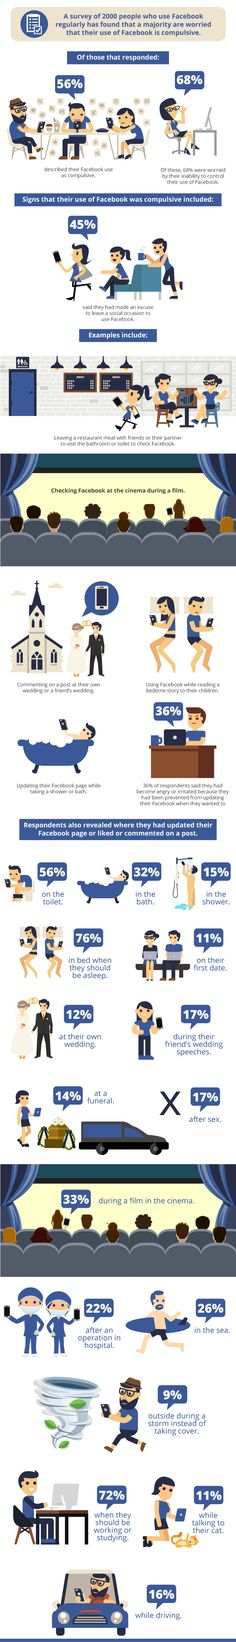 #SocialMedia Addiction: Find Out Where People Have Admitted To Using Facebook - #infographic